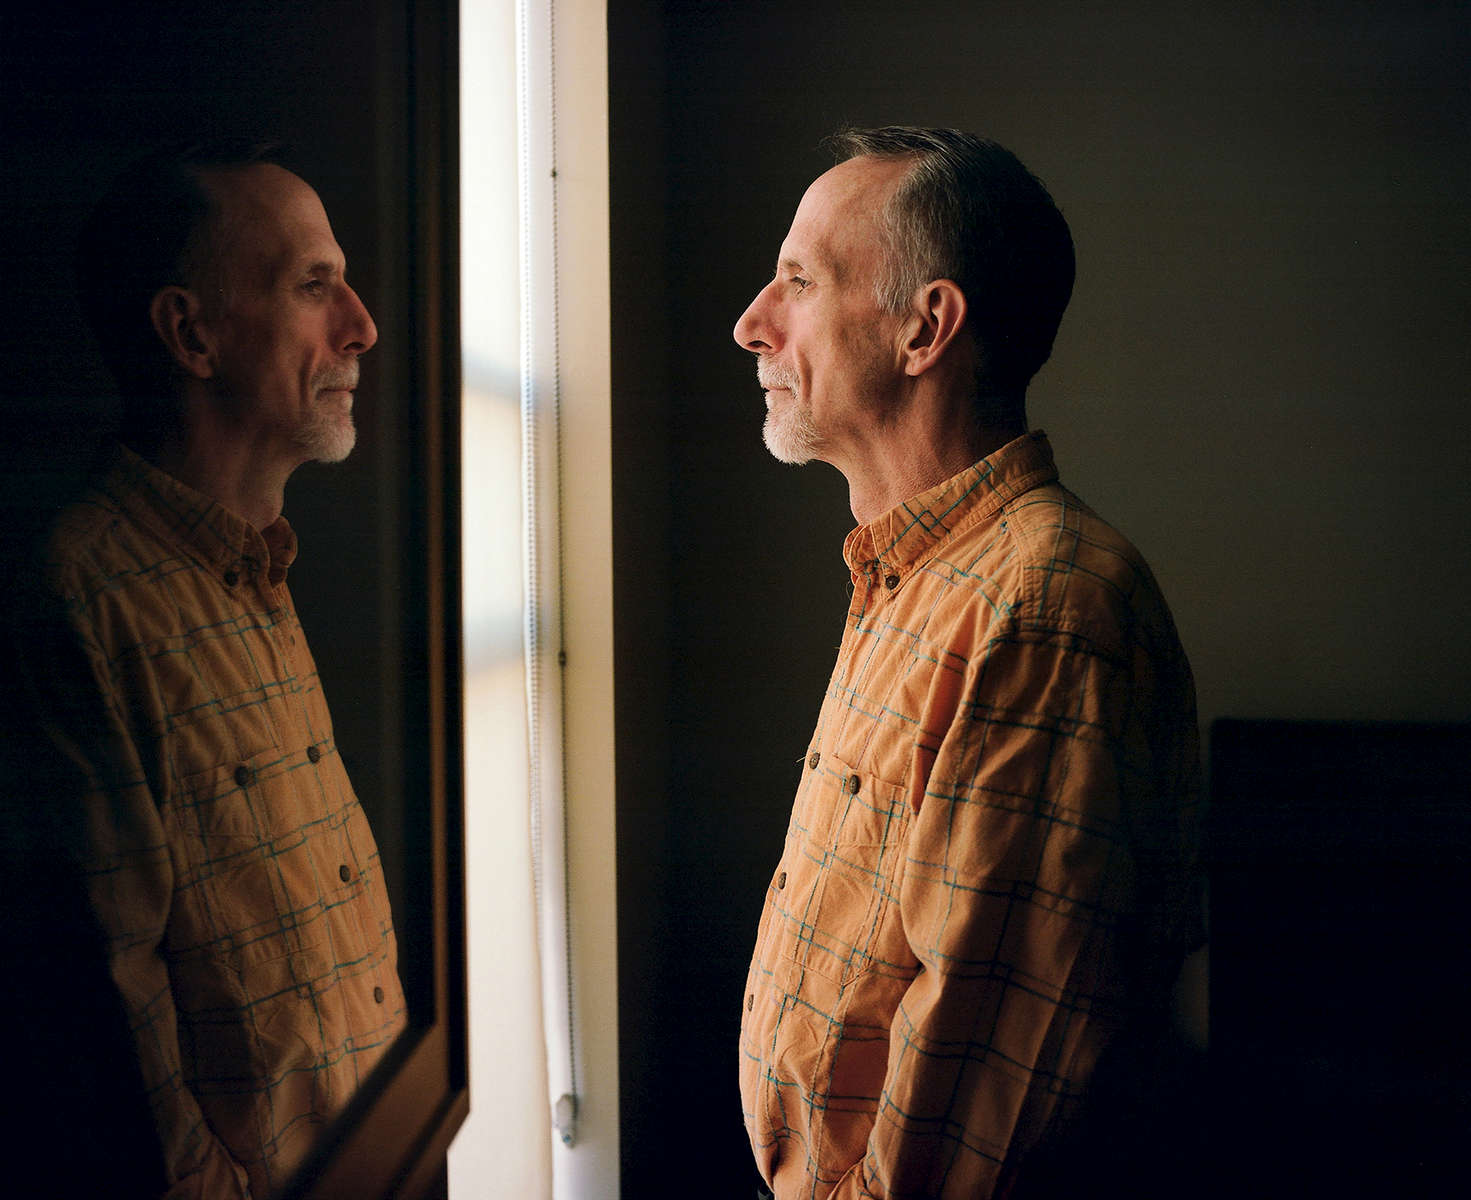 Kevin VandenBergh looks out the window of his new apartment in San Francisco, Calif. on November 23, 2016. VandenBergh was one of the men featured in the Chronicle's first feature film called Last Men Standing about long-term HIV survivors.